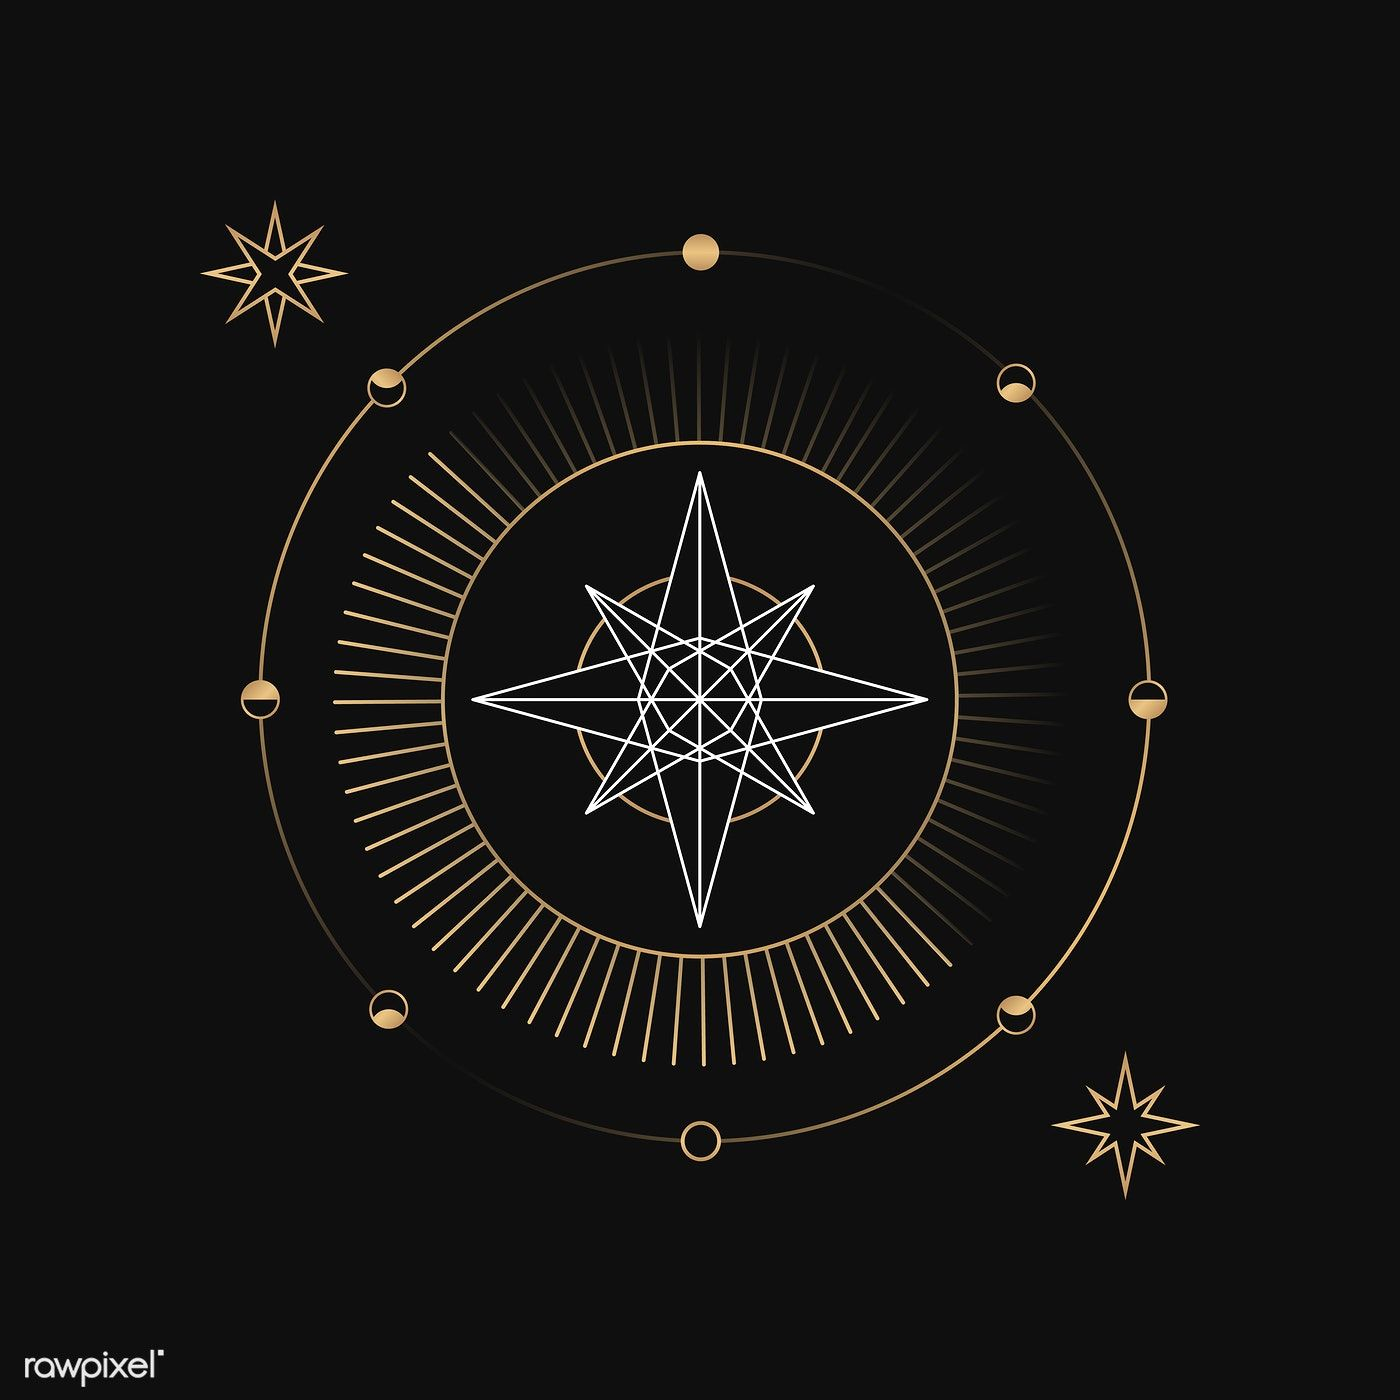 Download premium vector of Geometric star mystic symbol